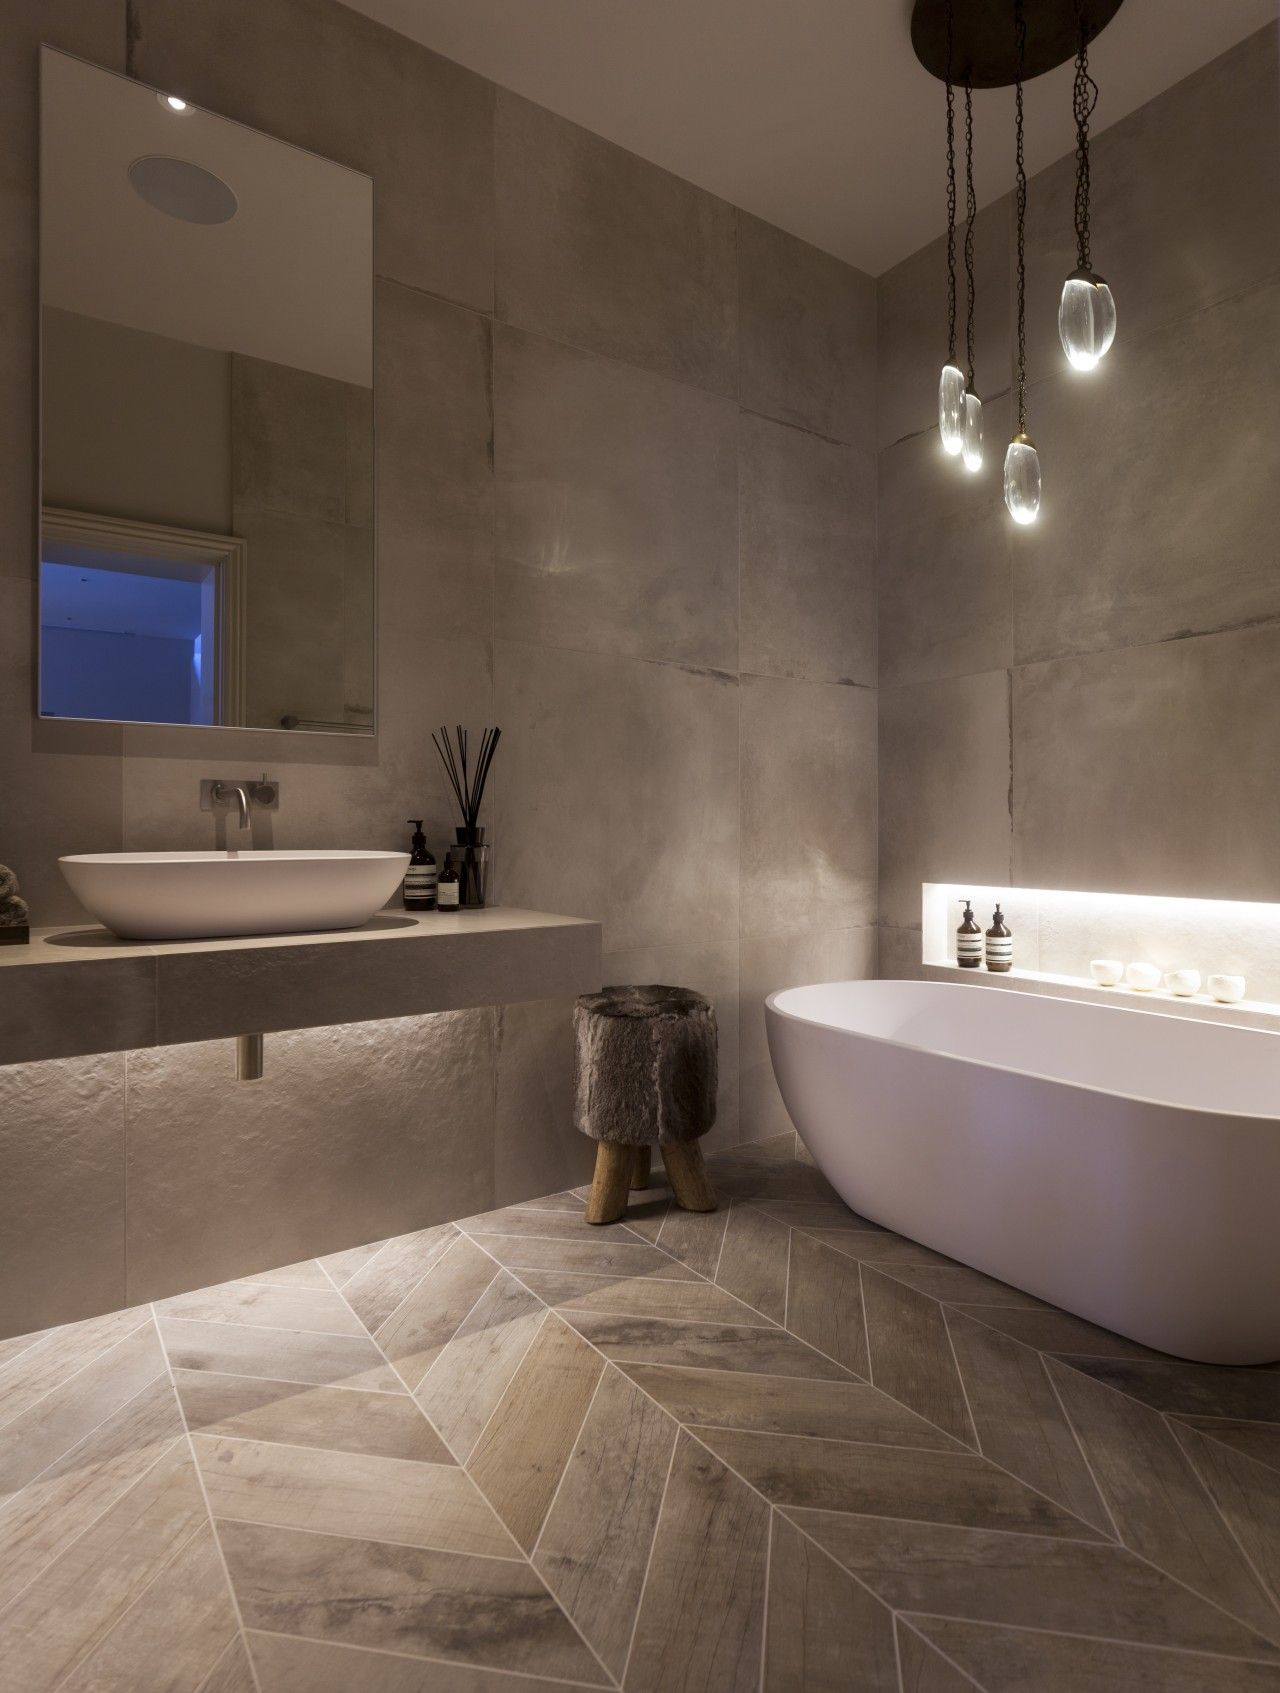 Private residence bath room janey butler interiors for New bathroom design